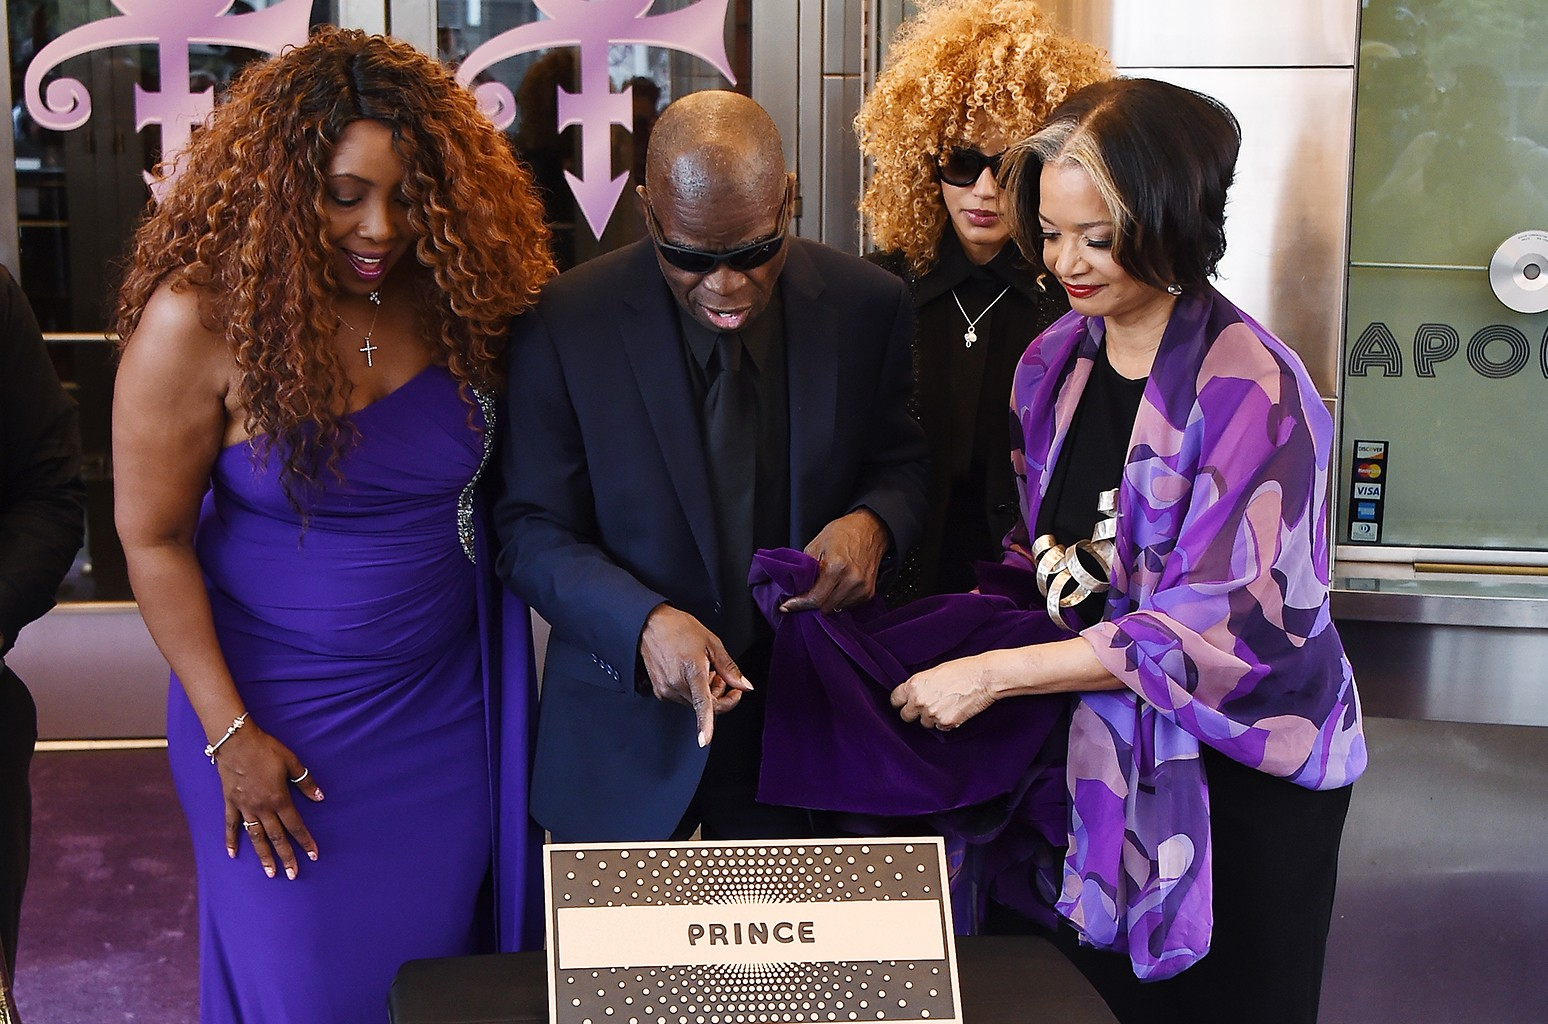 Prince's induction into the Apollo Walk Of Fame